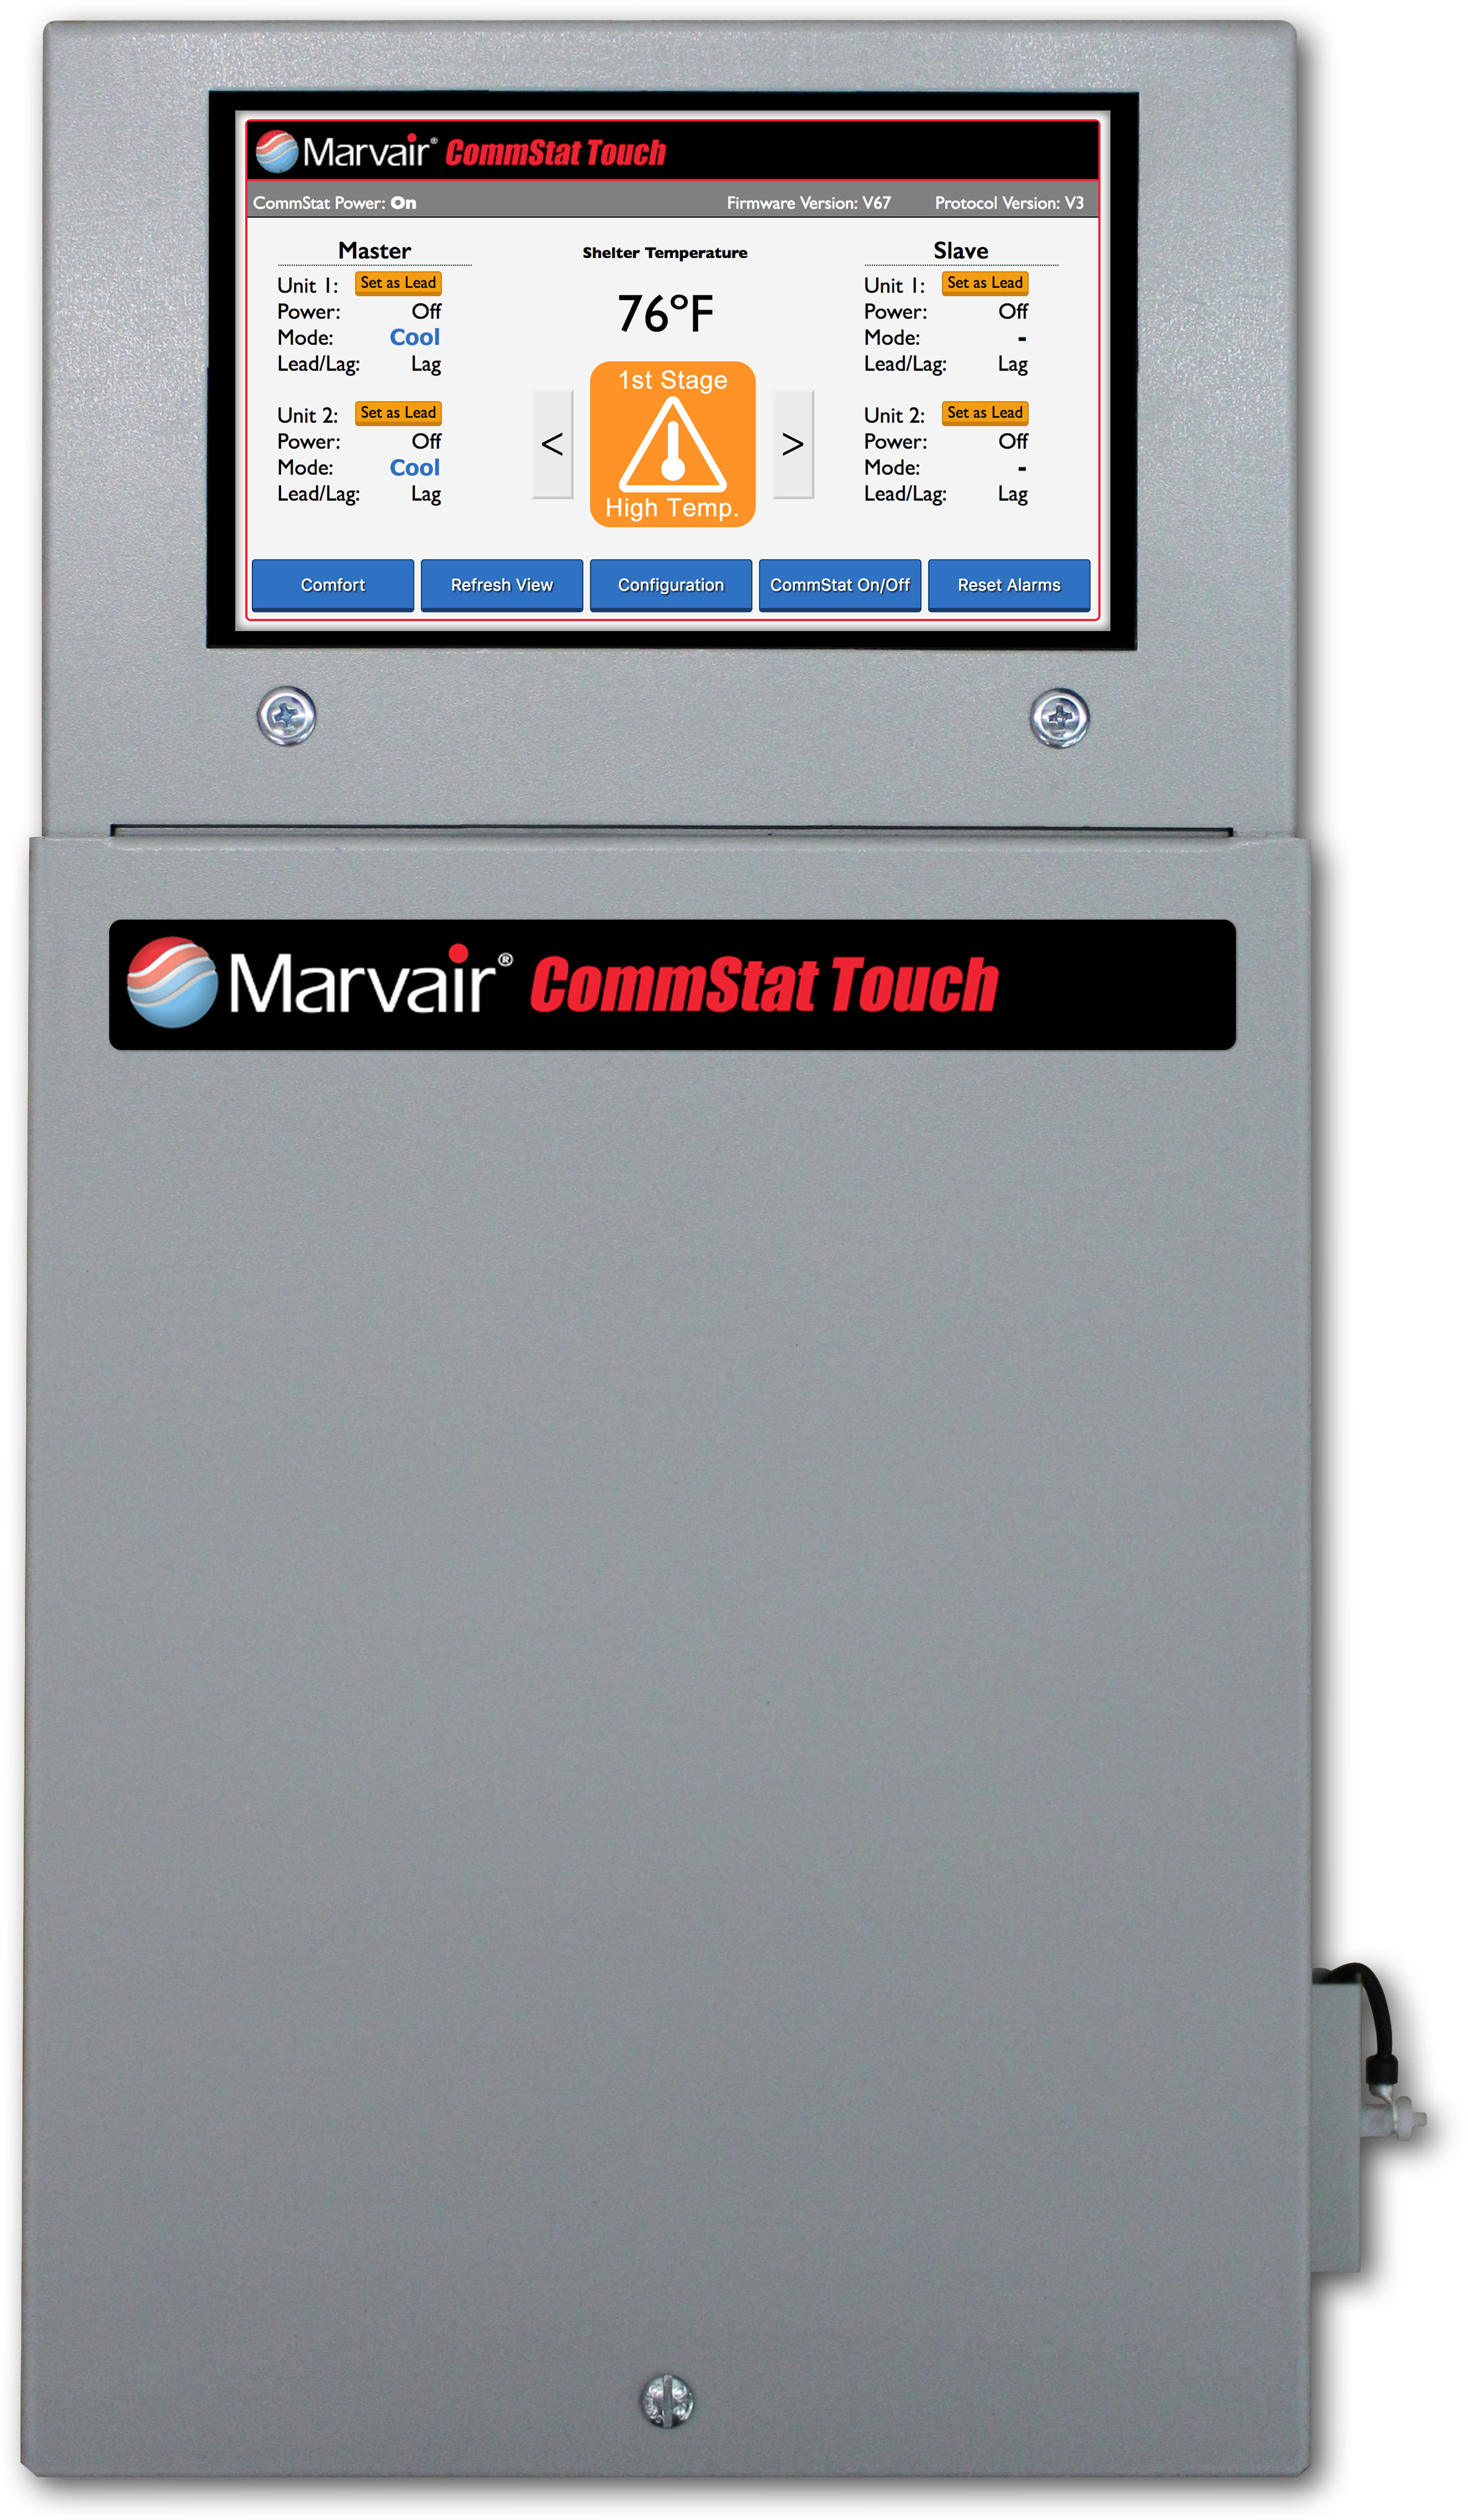 Marvair CommStat Touch Telecom HVAC Control